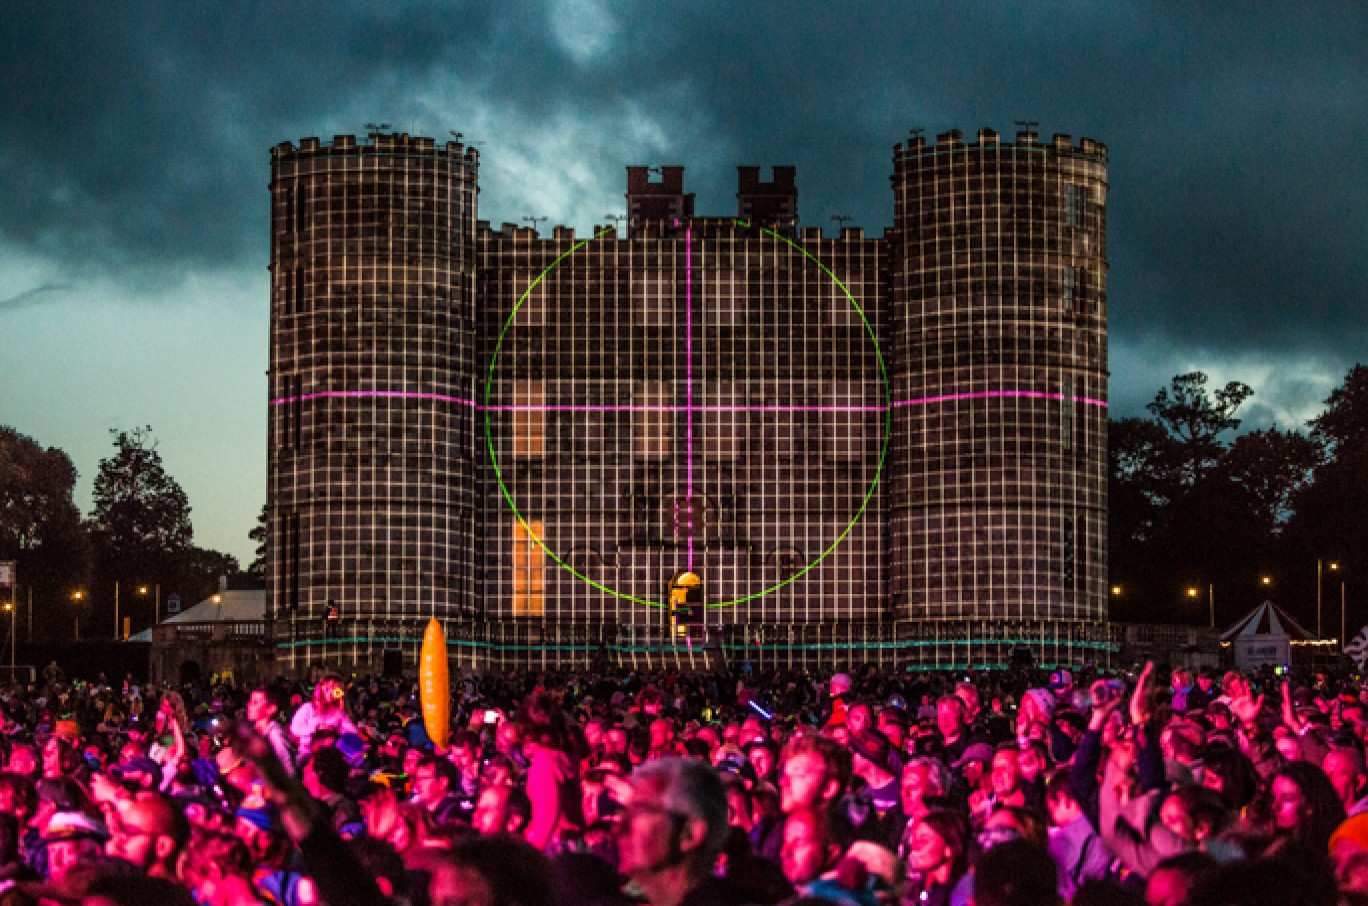 6_13-camp-bestival-2017-castle-rb-f61a27781501584979